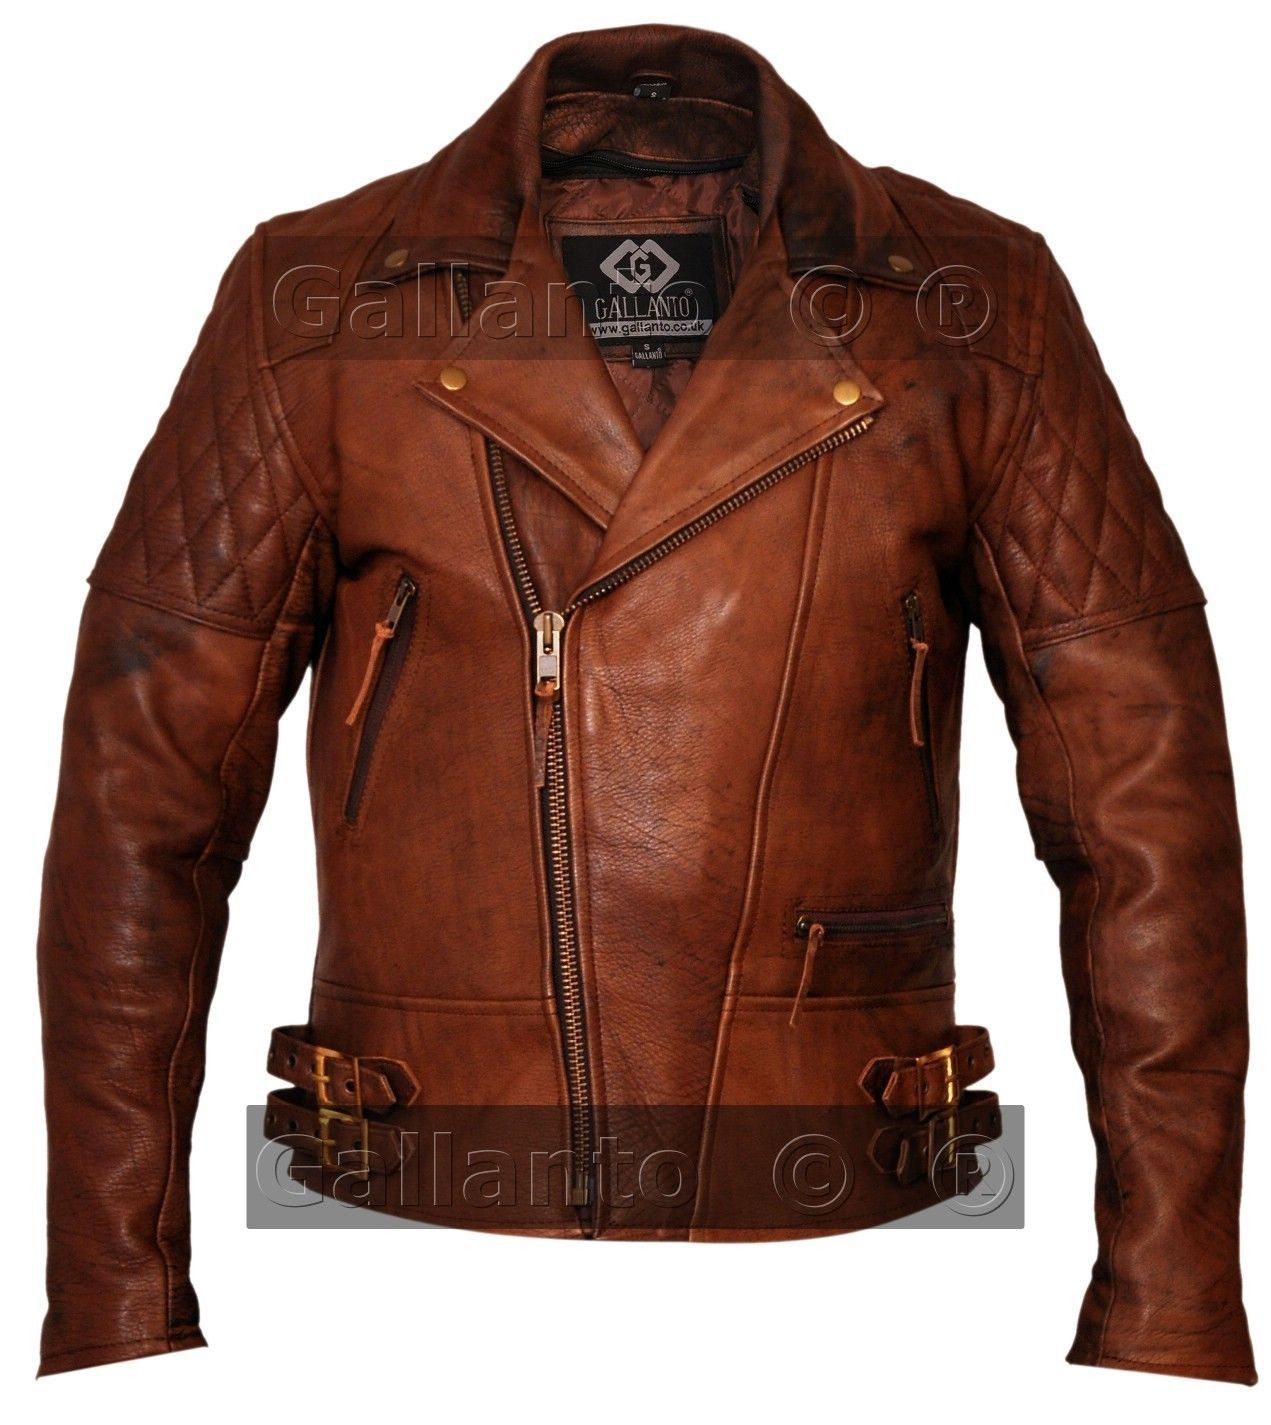 Vintage Brown Classic Diamond Biker Leather Jacket